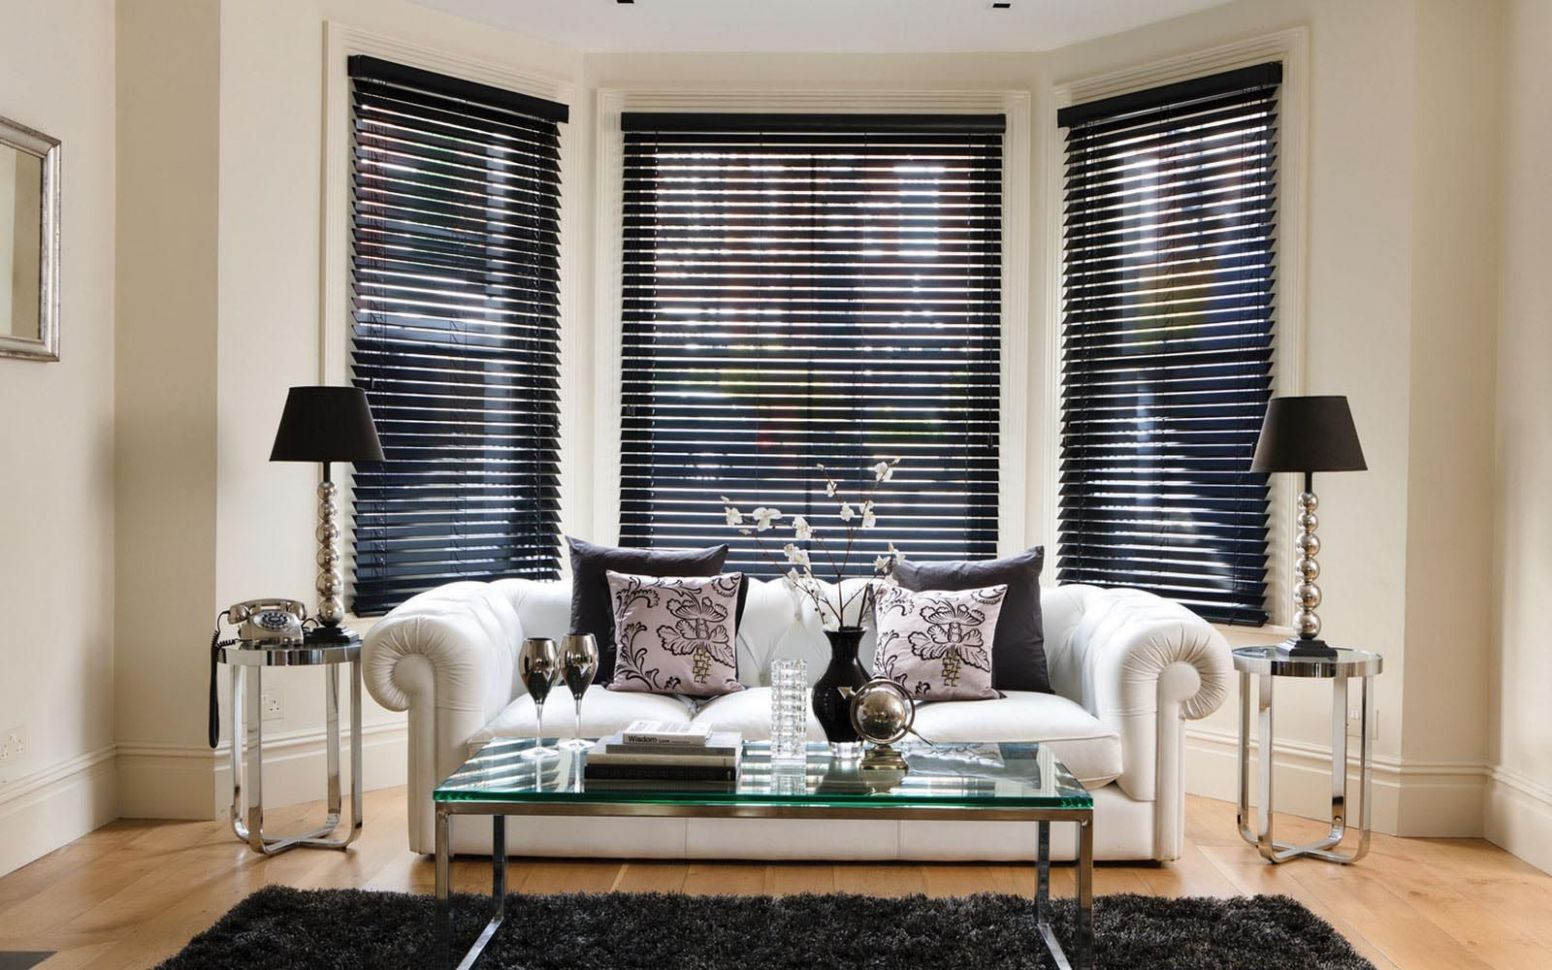 Black Wood Blinds for Windows | Living room blinds, Wooden blinds ...